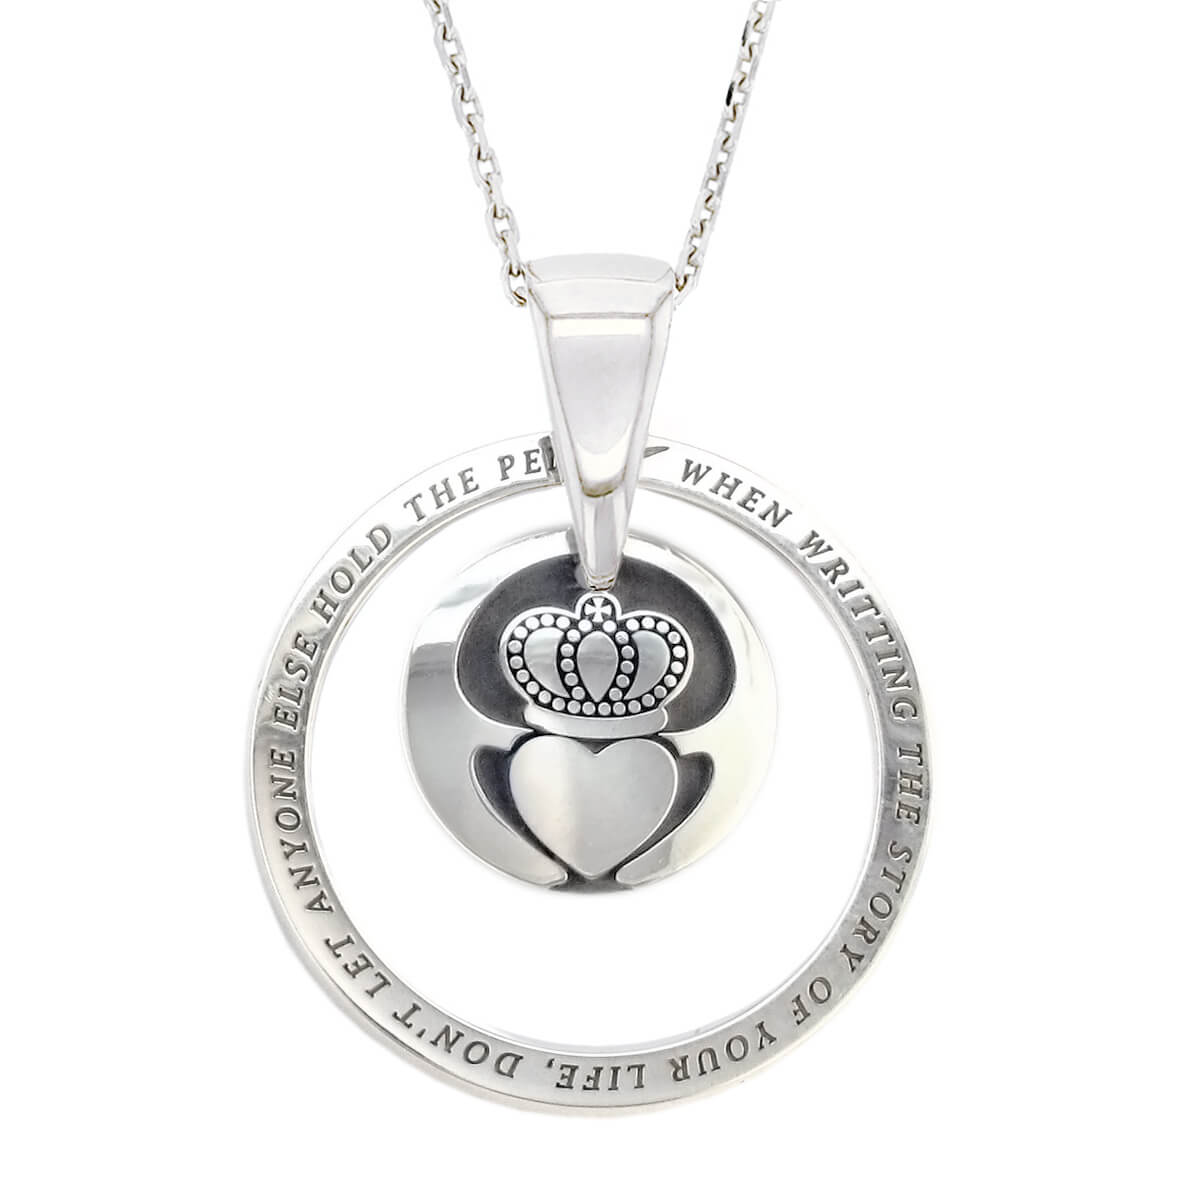 Faller Kryptos necklace, sterling silver, message pendant, personalised engraving, make your own, jewellery, gift, celebration, symbol, claddagh, love, loyalty, friendship